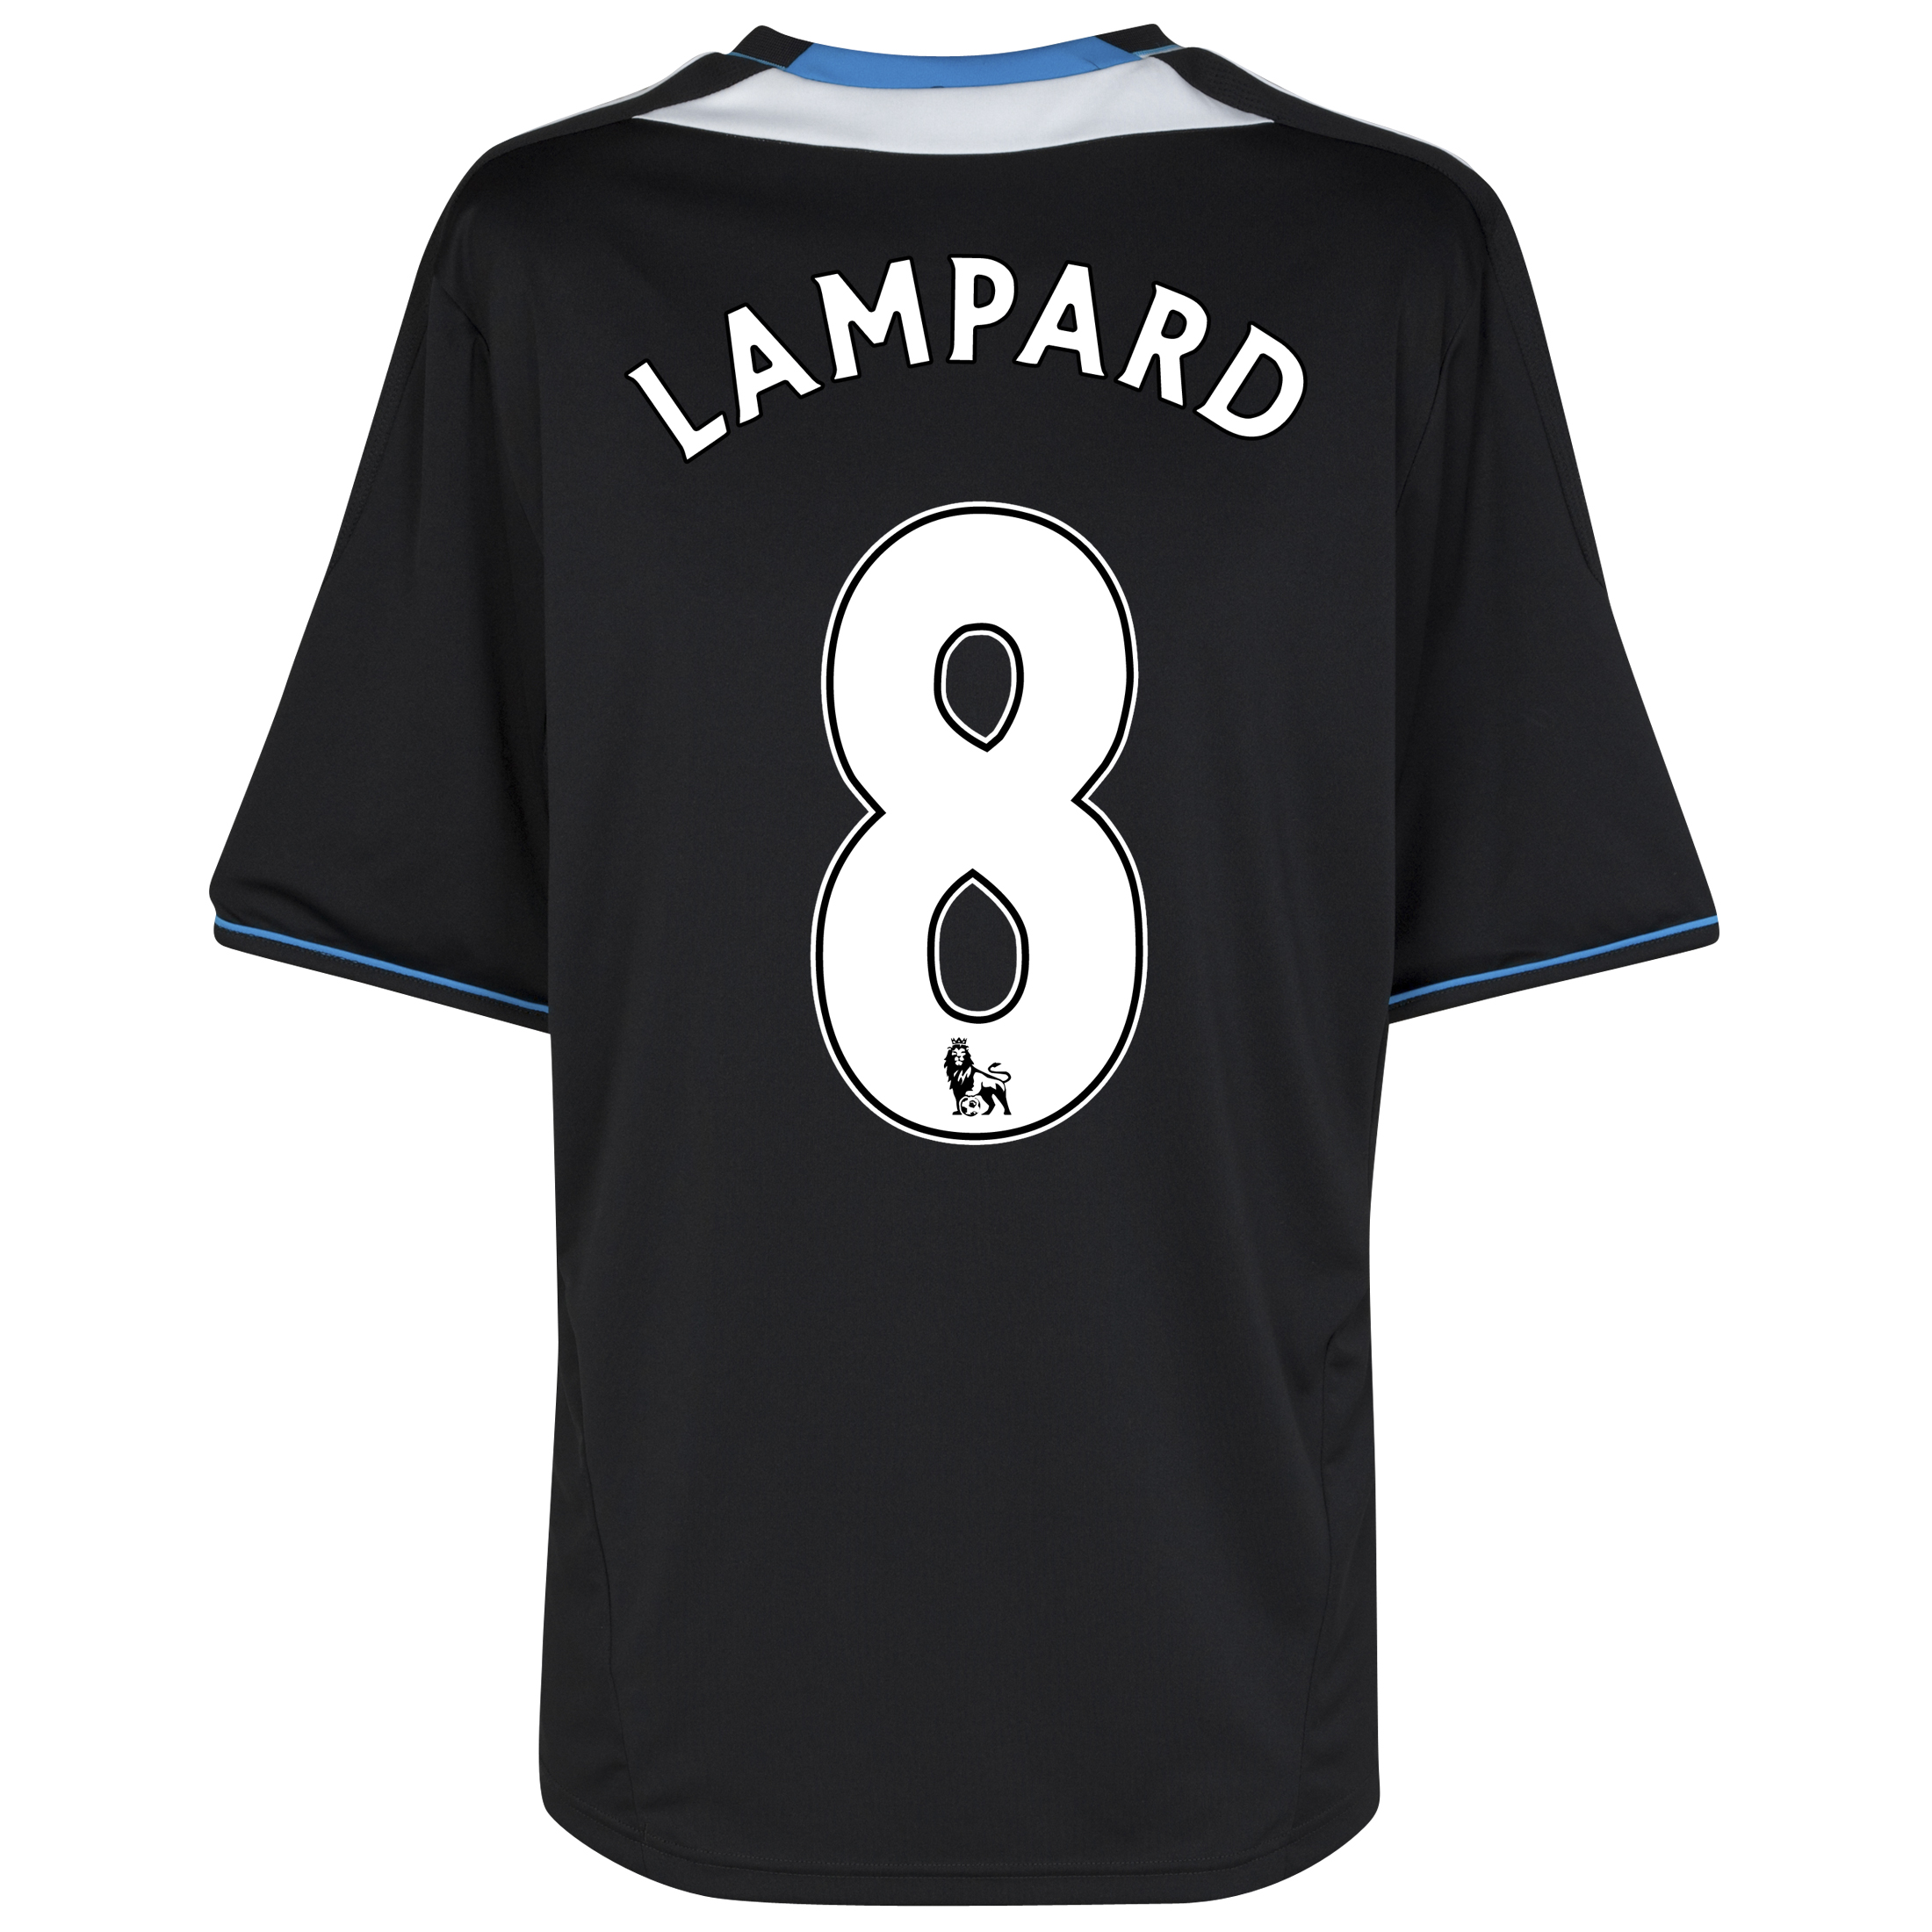 Chelsea Away Shirt 2011/12 with Lampard 8 printing